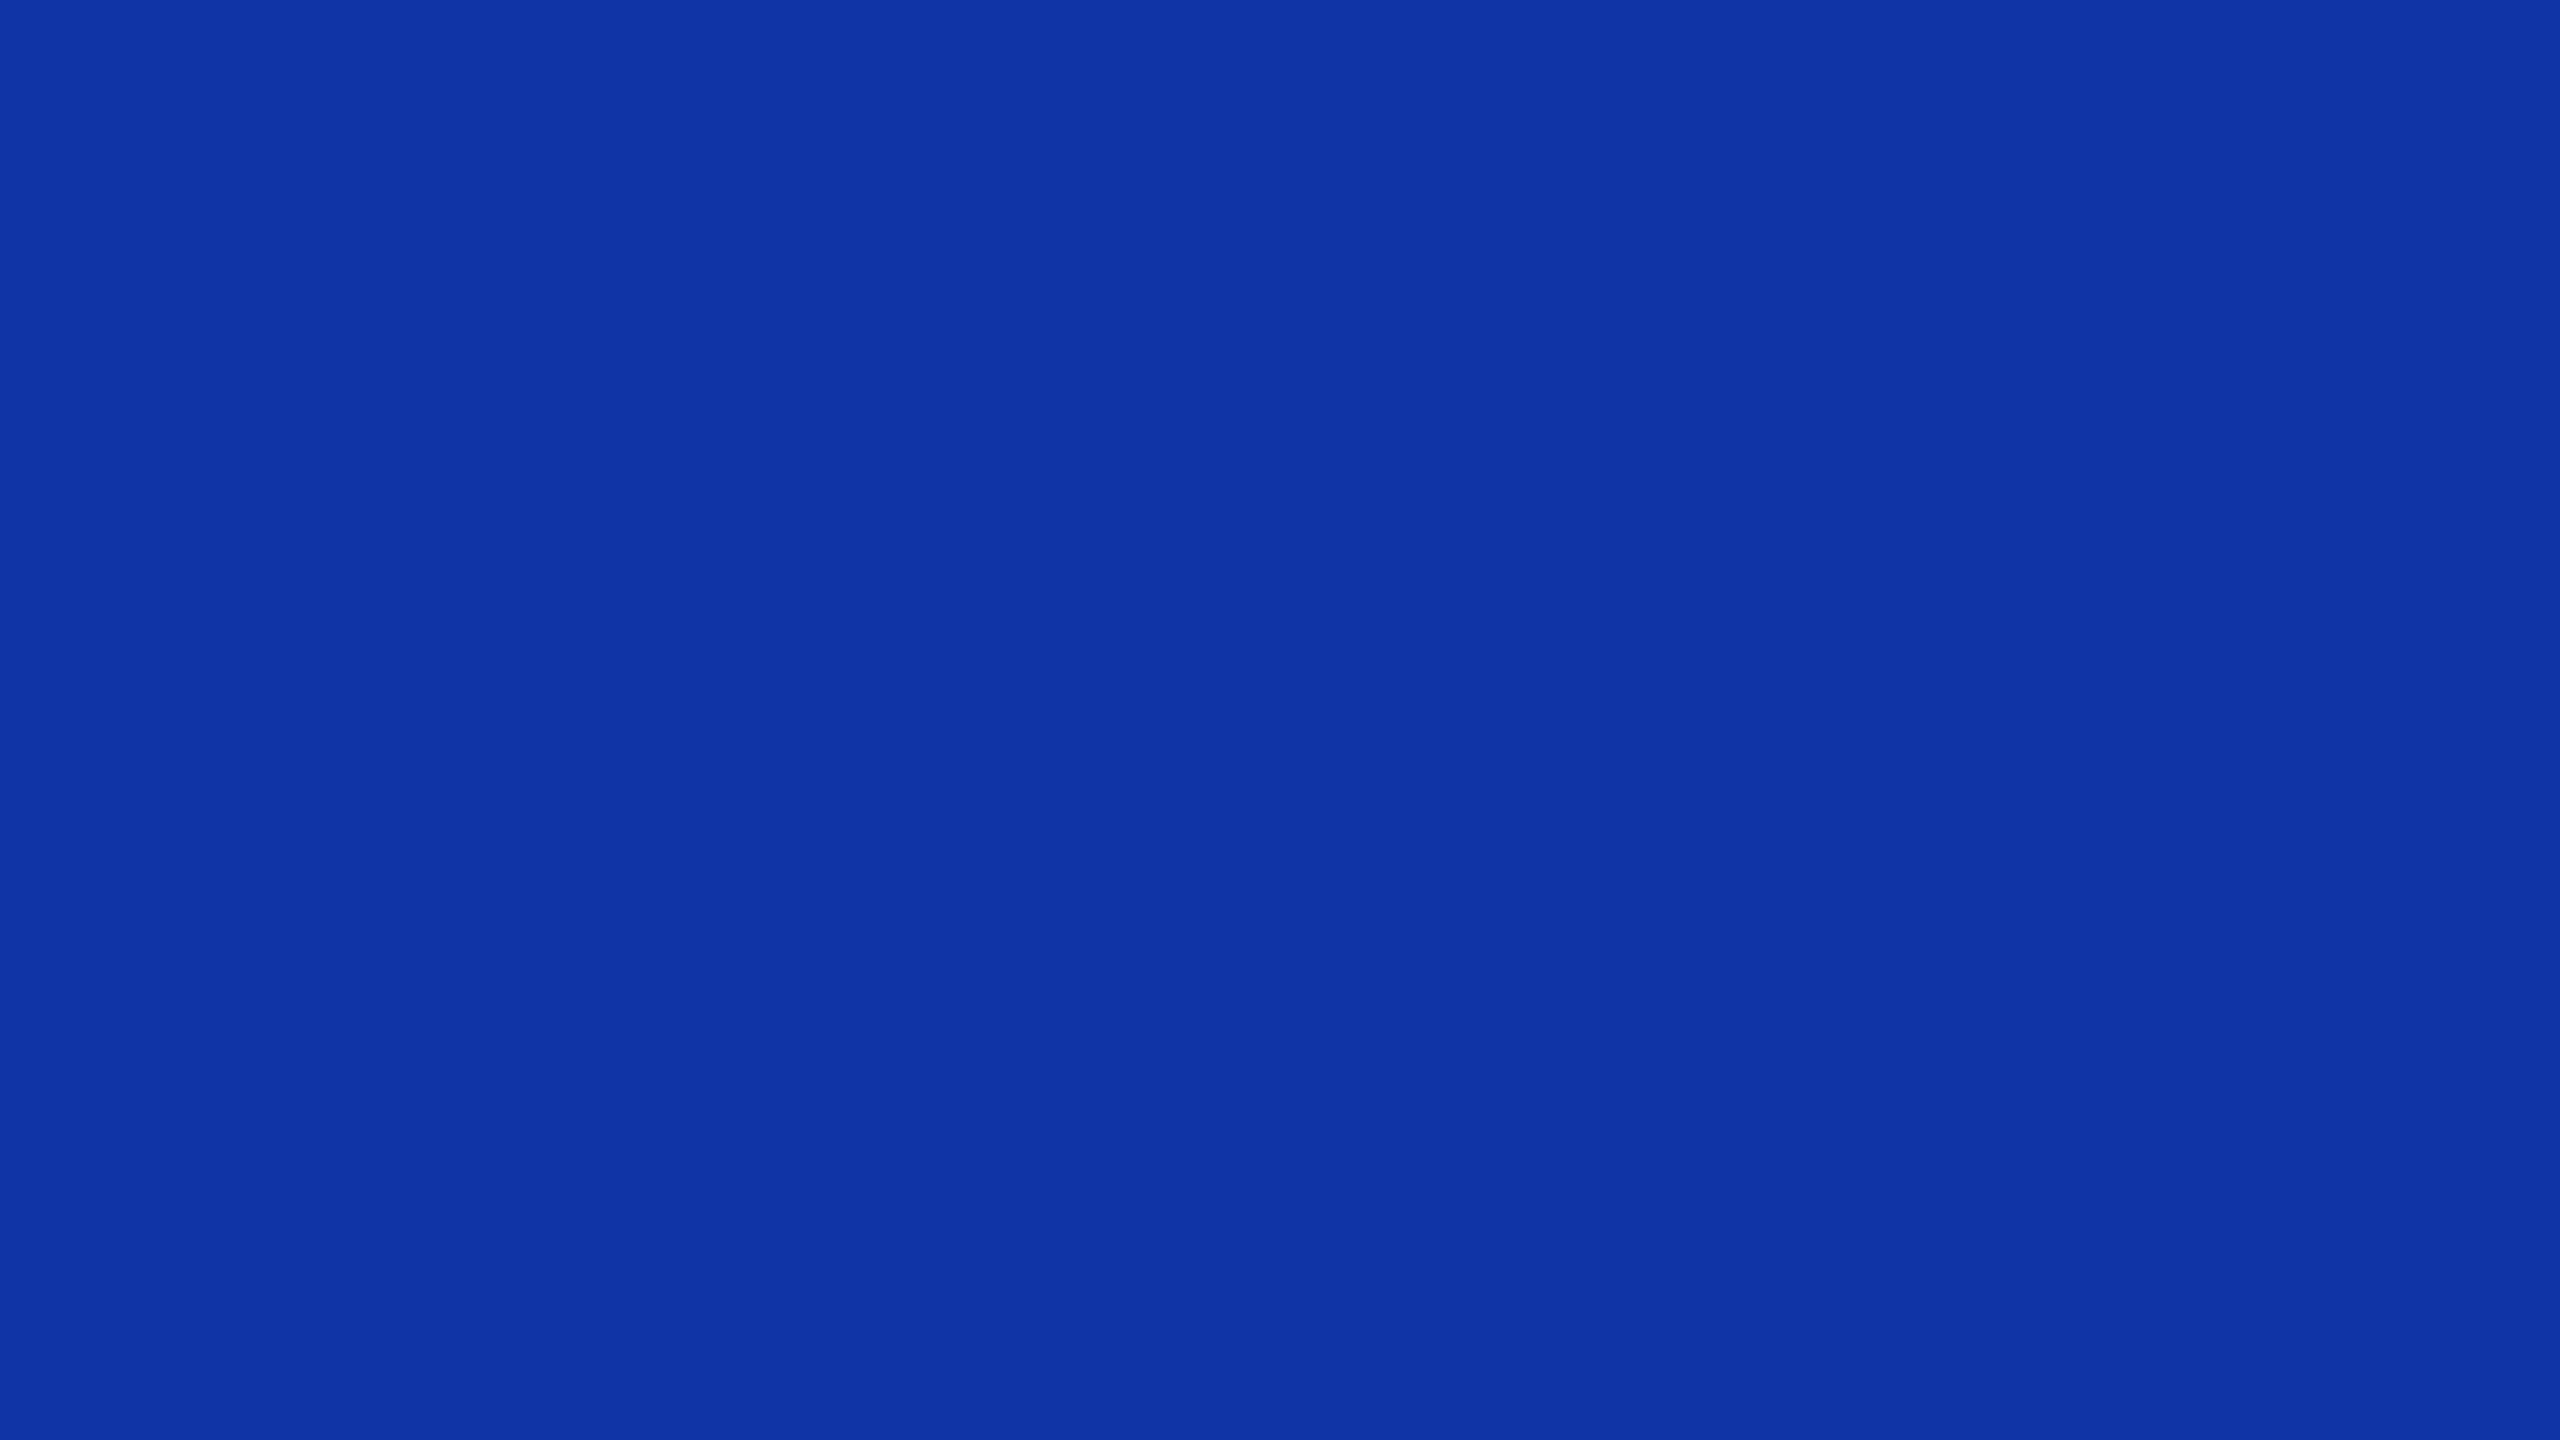 2560x1440 Egyptian Blue Solid Color Background